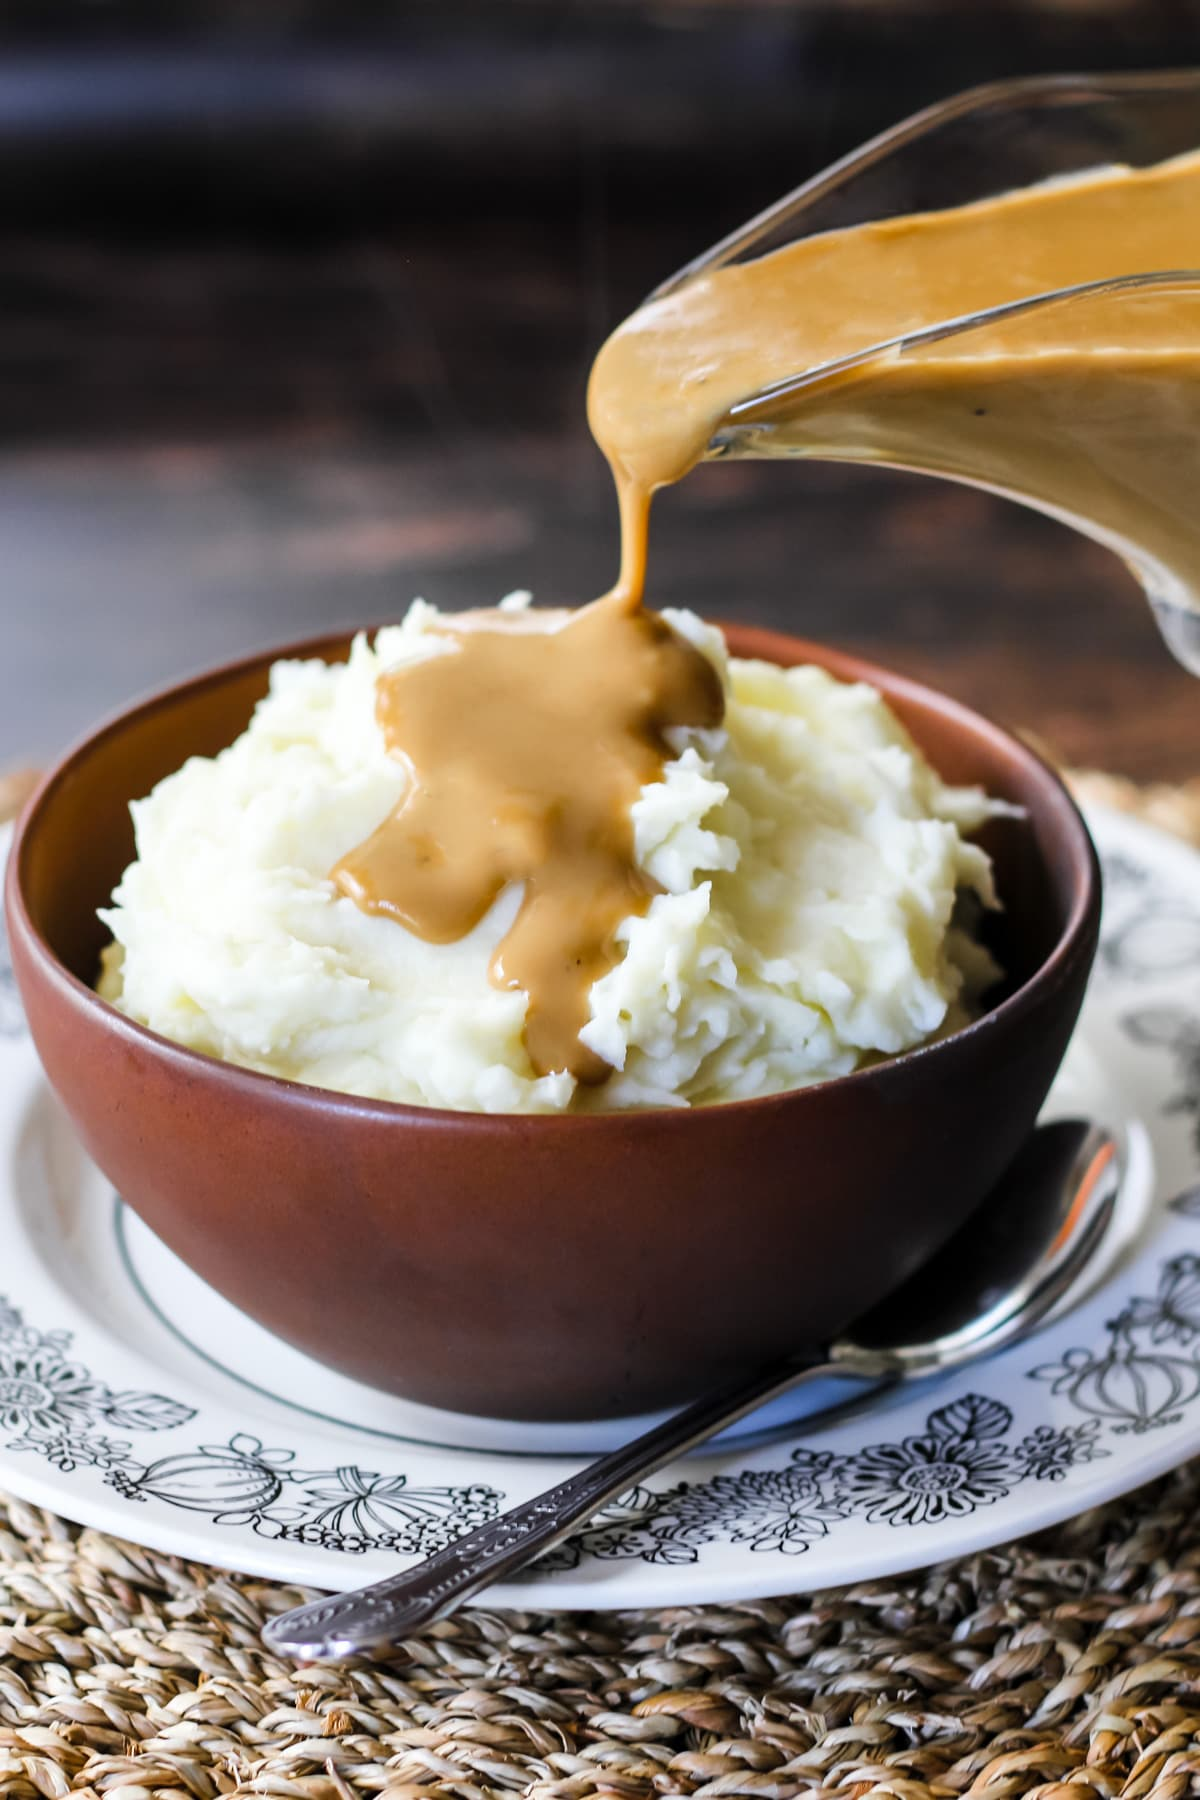 a gravy boat is pouring out gravy onto a brown bowl filled with mashed potatoes